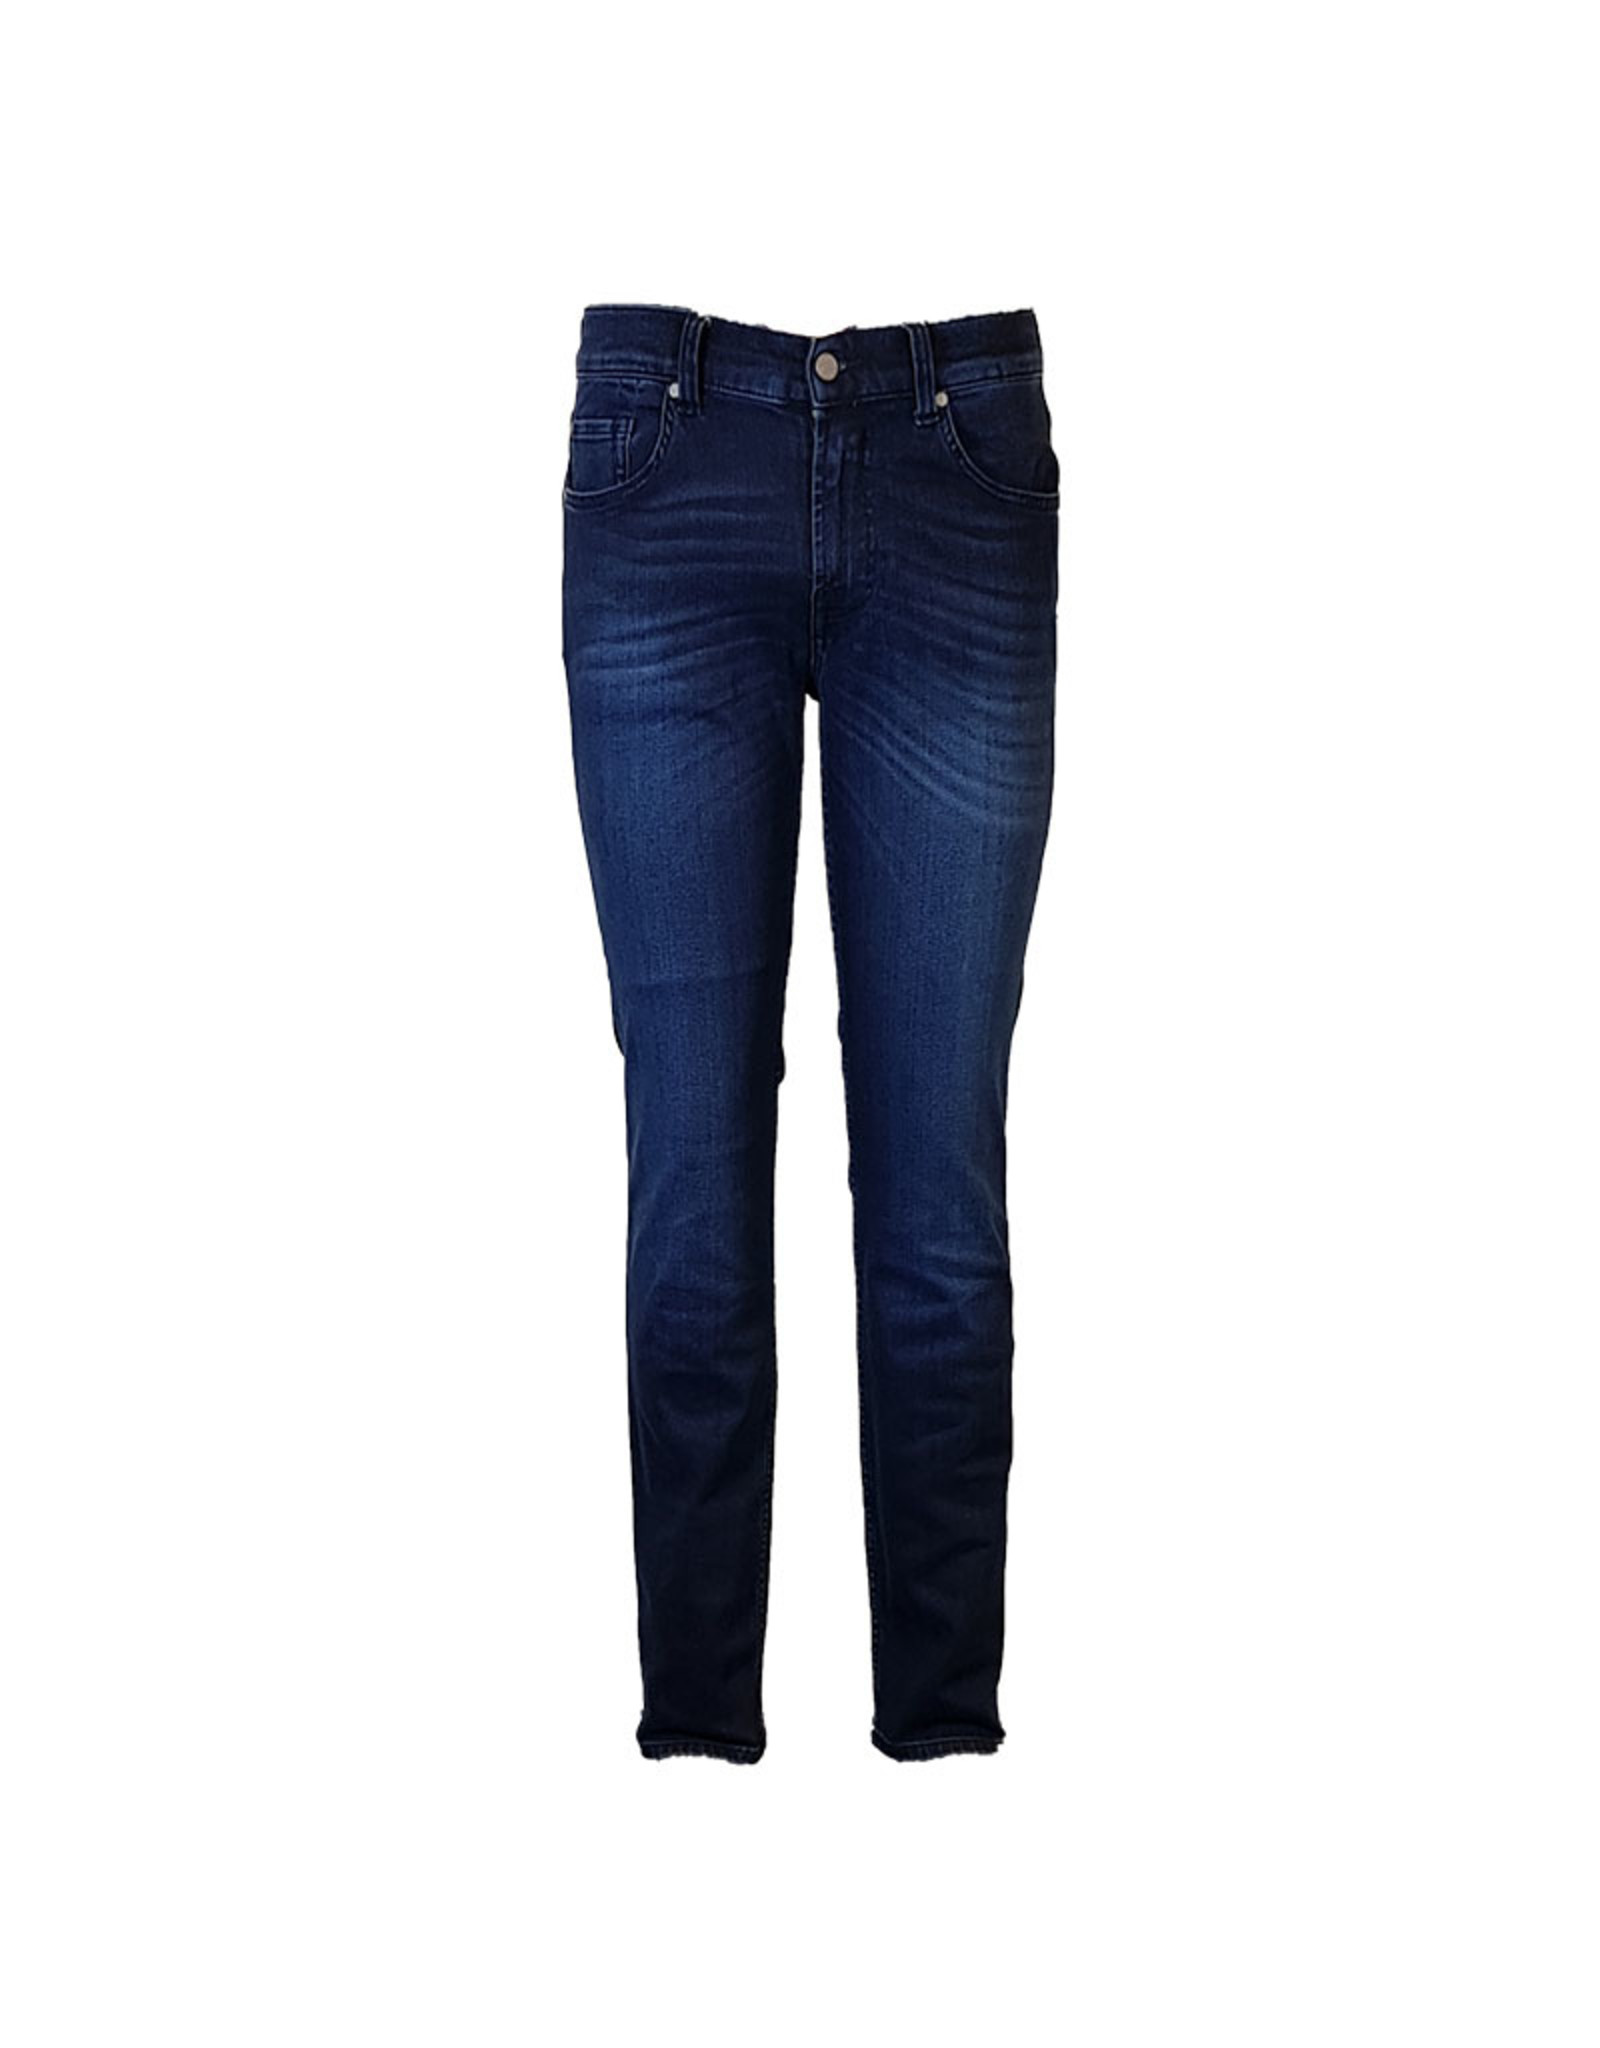 7 For All Mankind 7FAM jeans blauw Slimmy JSMSR460AI